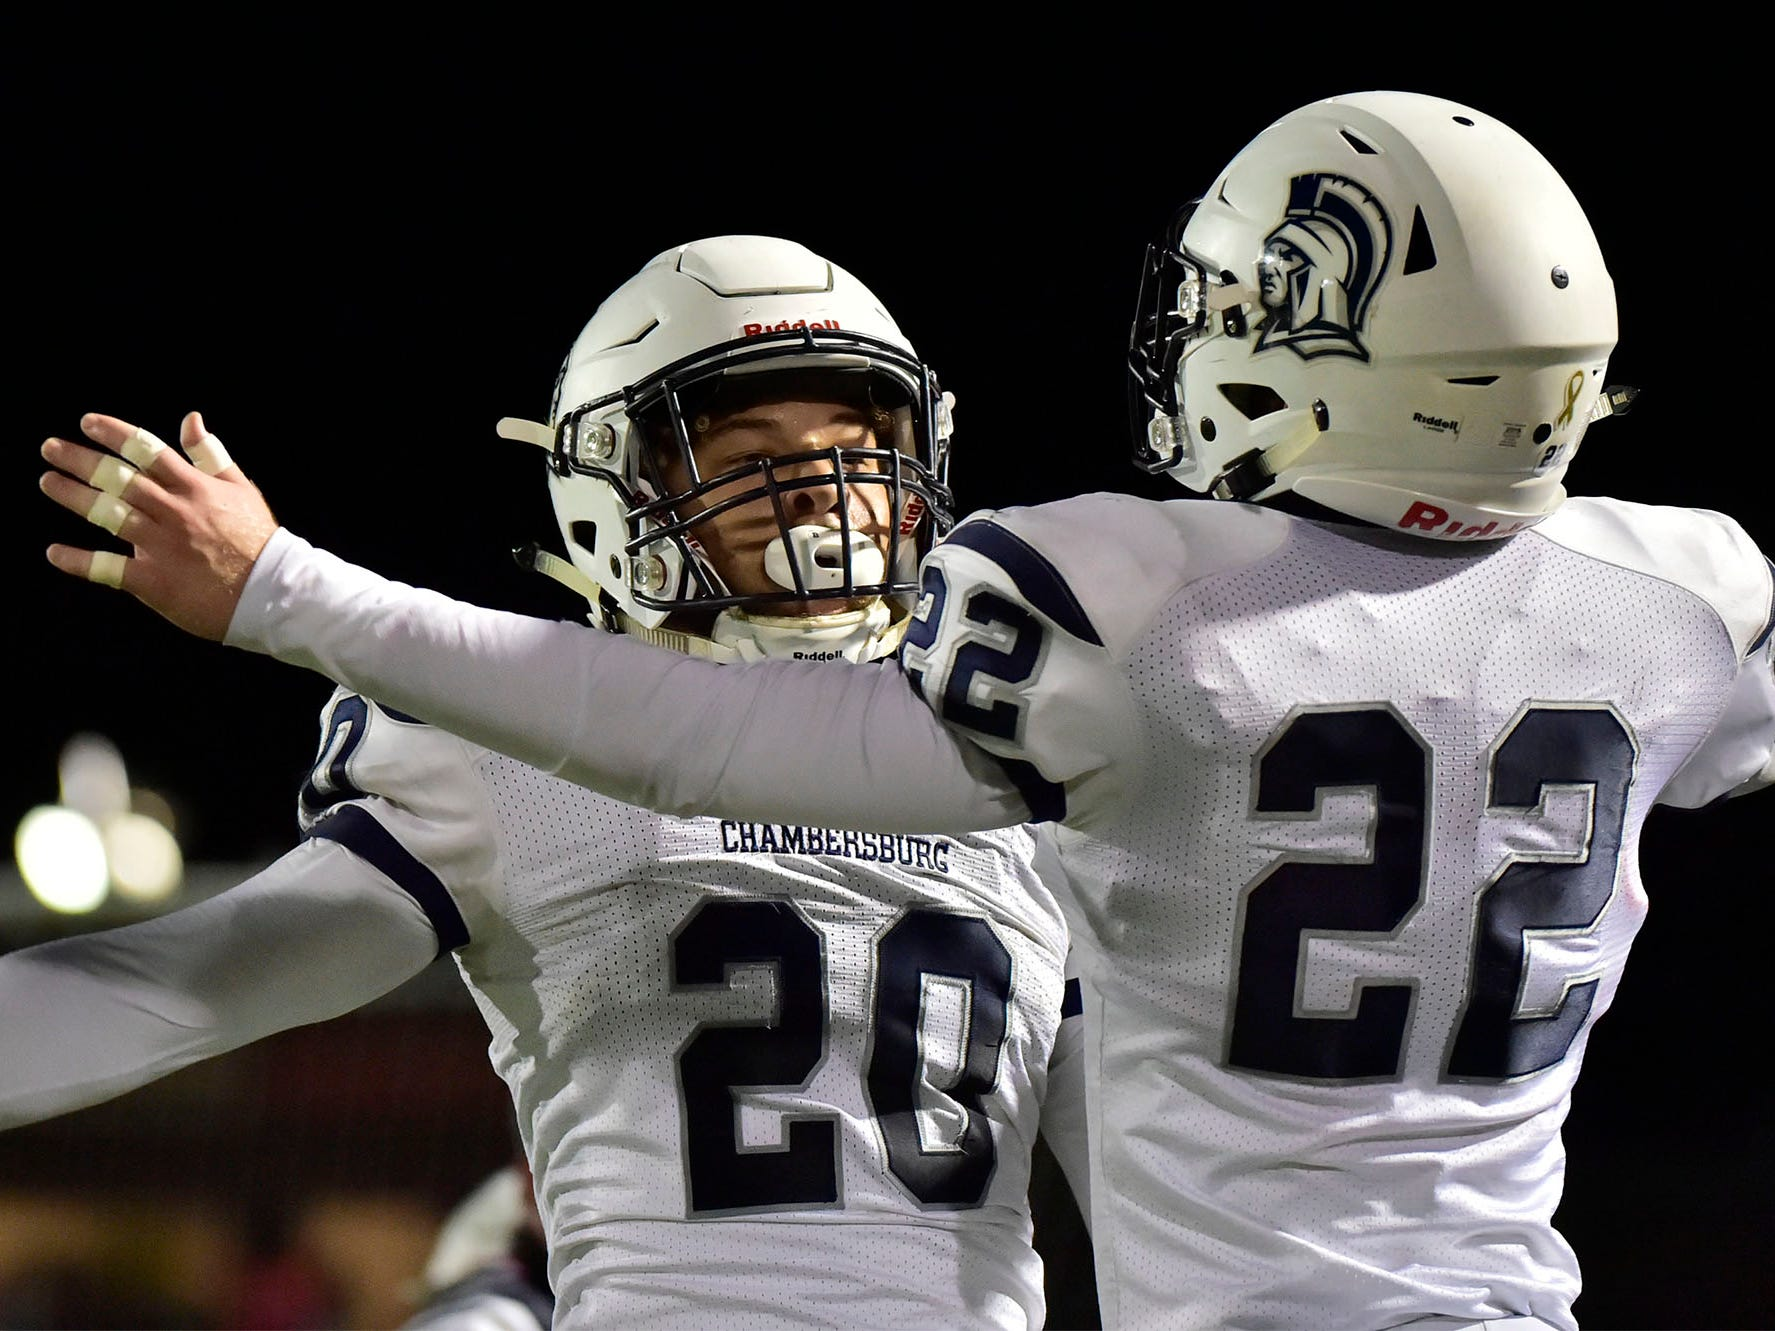 Chambersburg Kyere Morton (20) celebrates his TD with teammate Tucker Perry (22). Chambersburg Trojans jumped ahead of Central Dauphin East to win 26-20 in PIAA football on Friday, October 5, 2018.